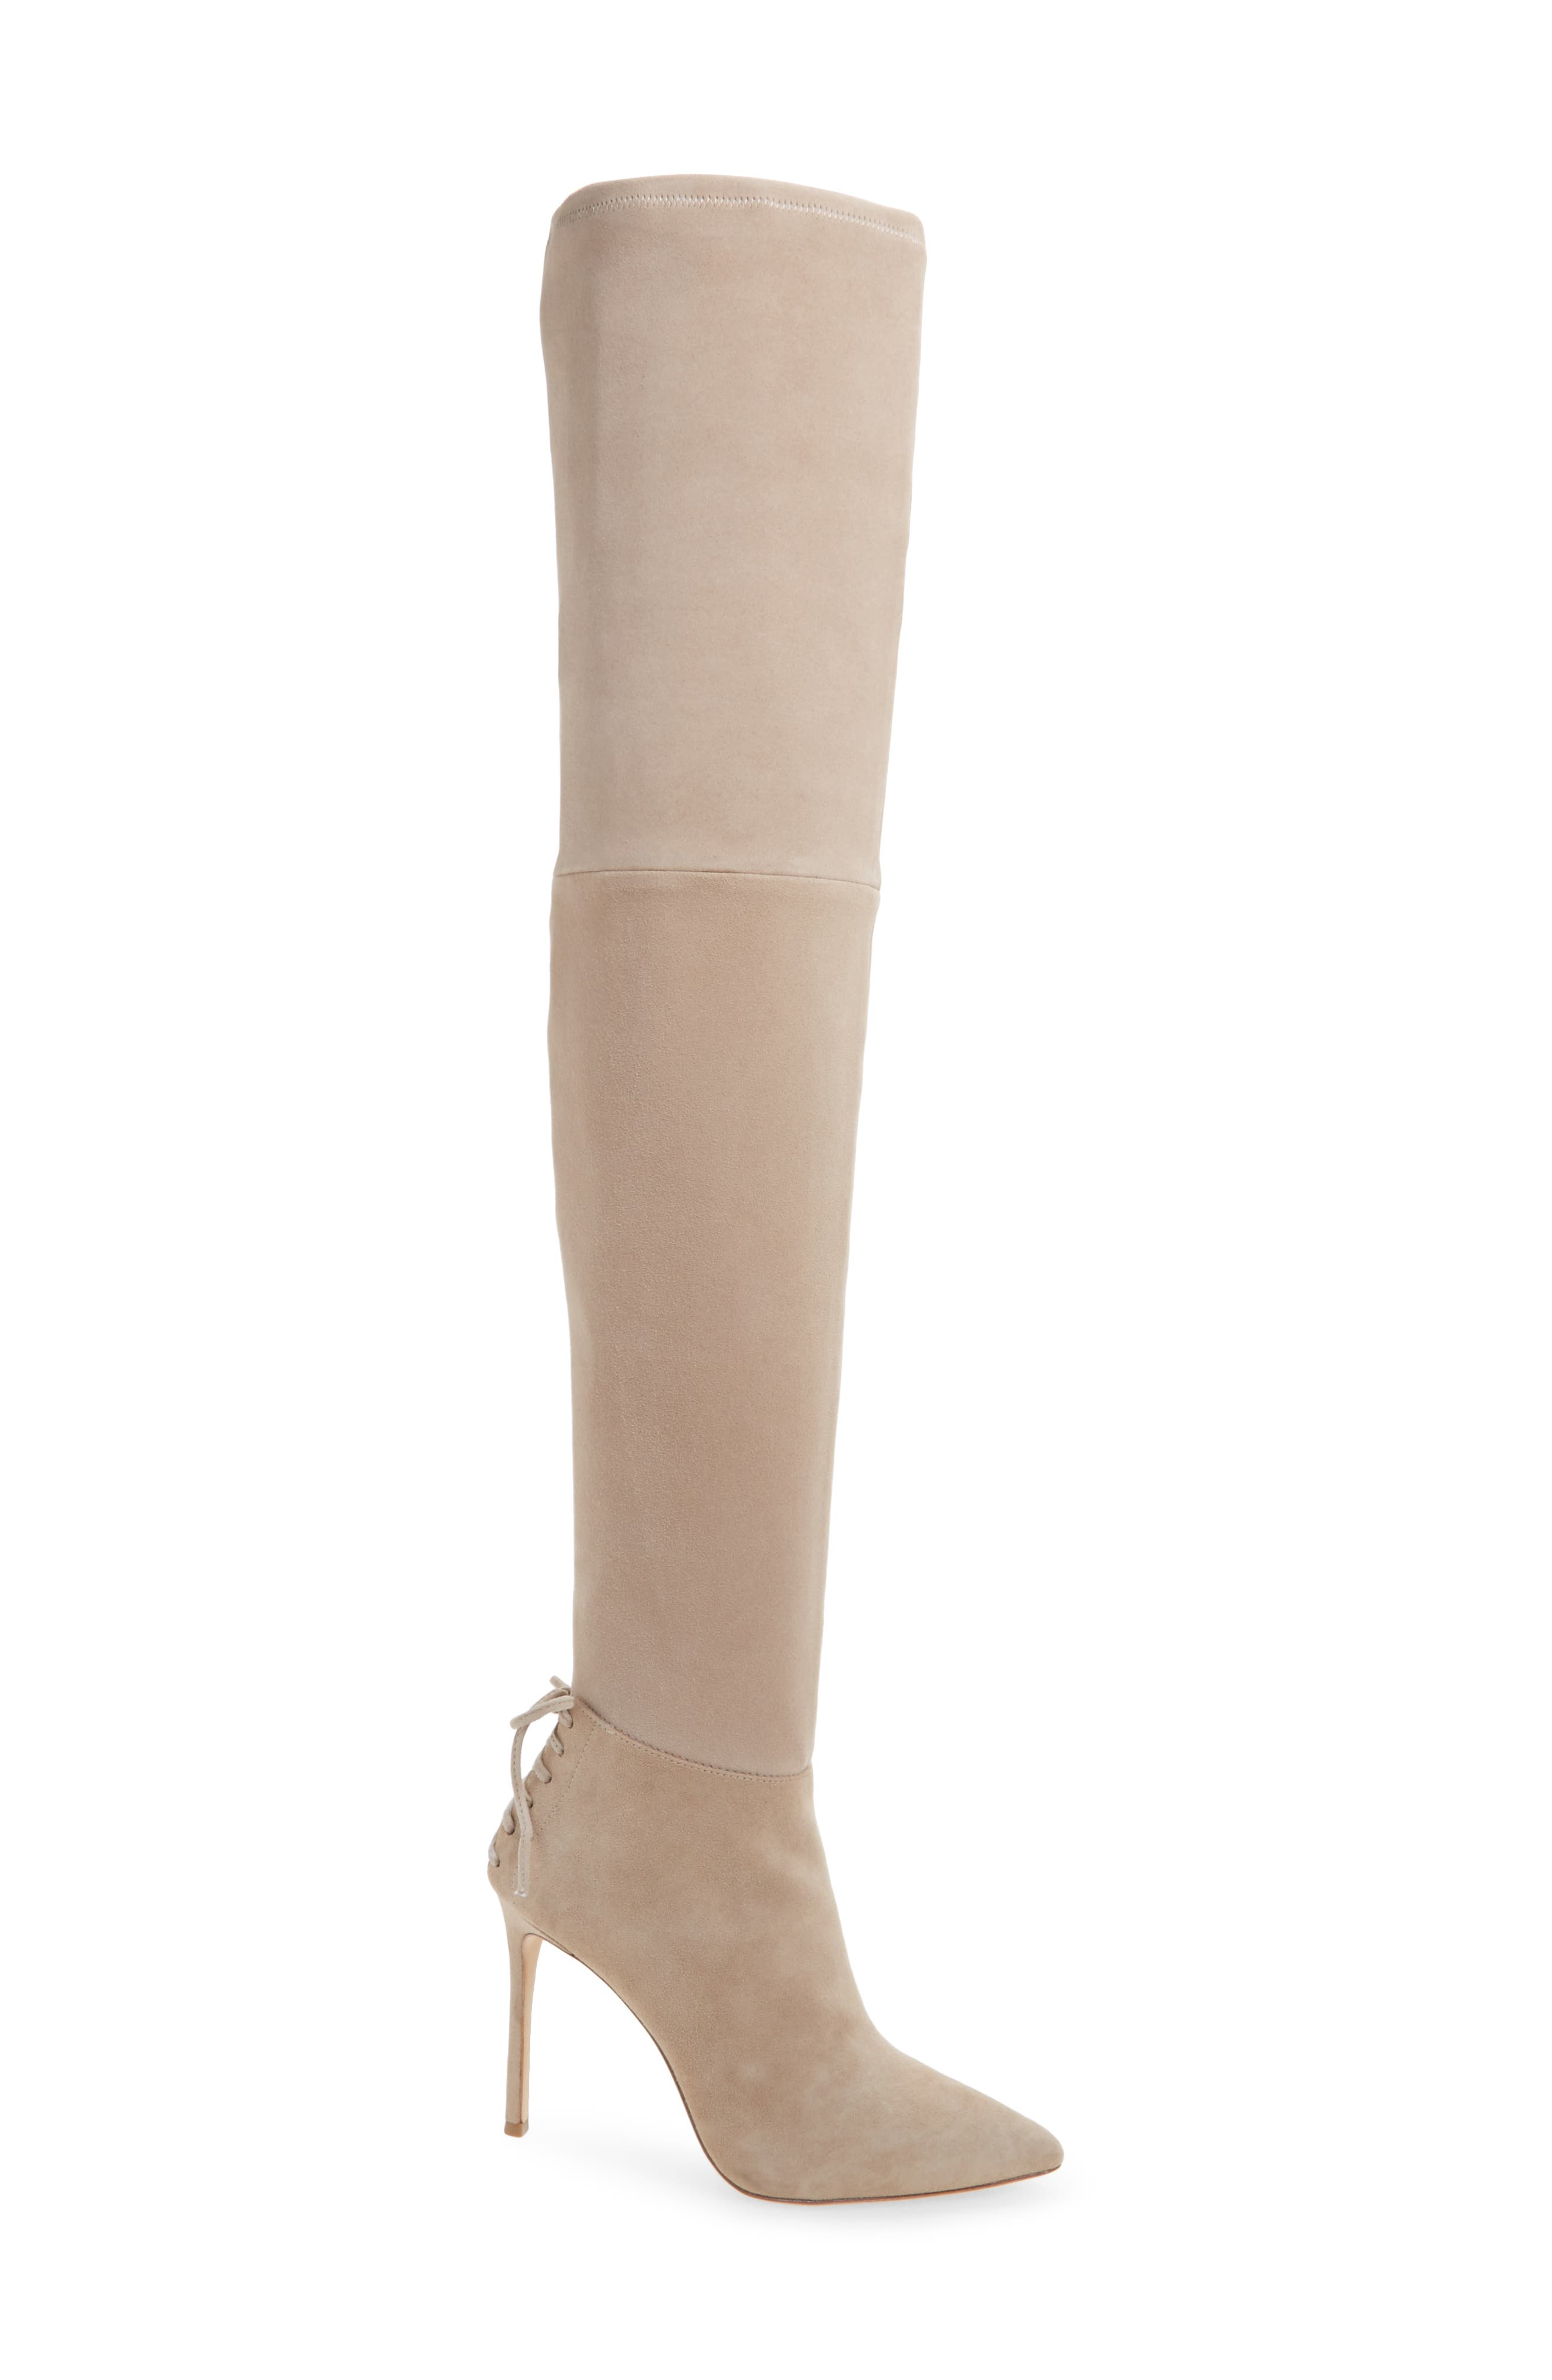 'Caterina' Over the Knee Boot,                             Alternate thumbnail 12, color,